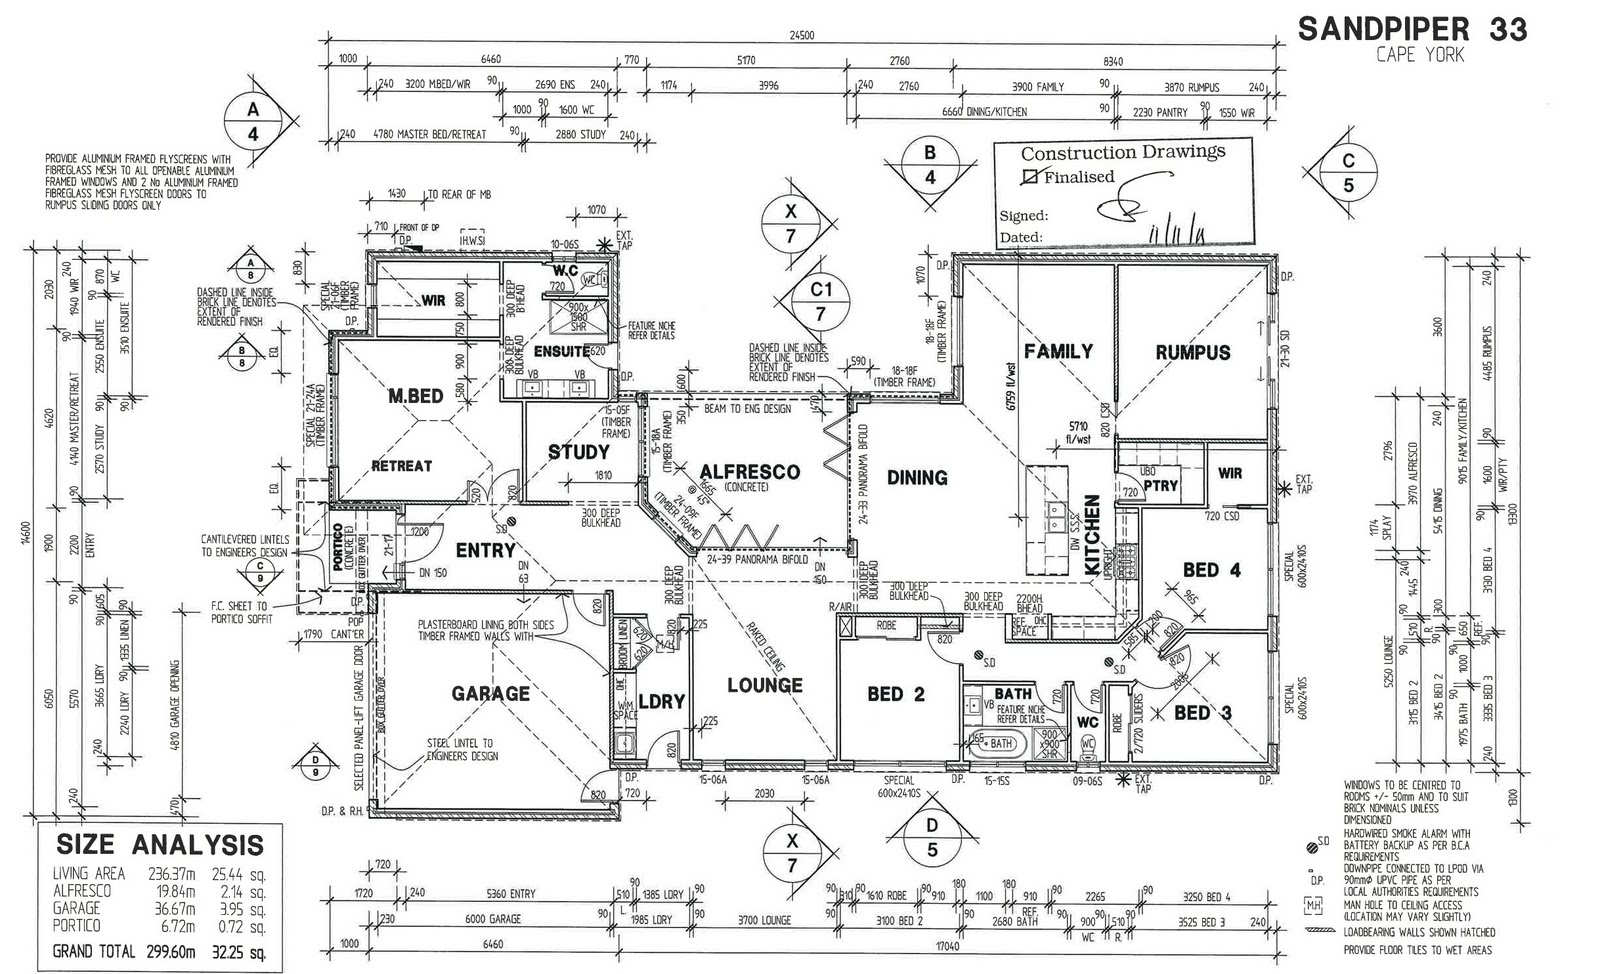 sandpiper floor plans trends home design images sierra fifth wheel floor plans besides floor plans sierra [ 1600 x 974 Pixel ]